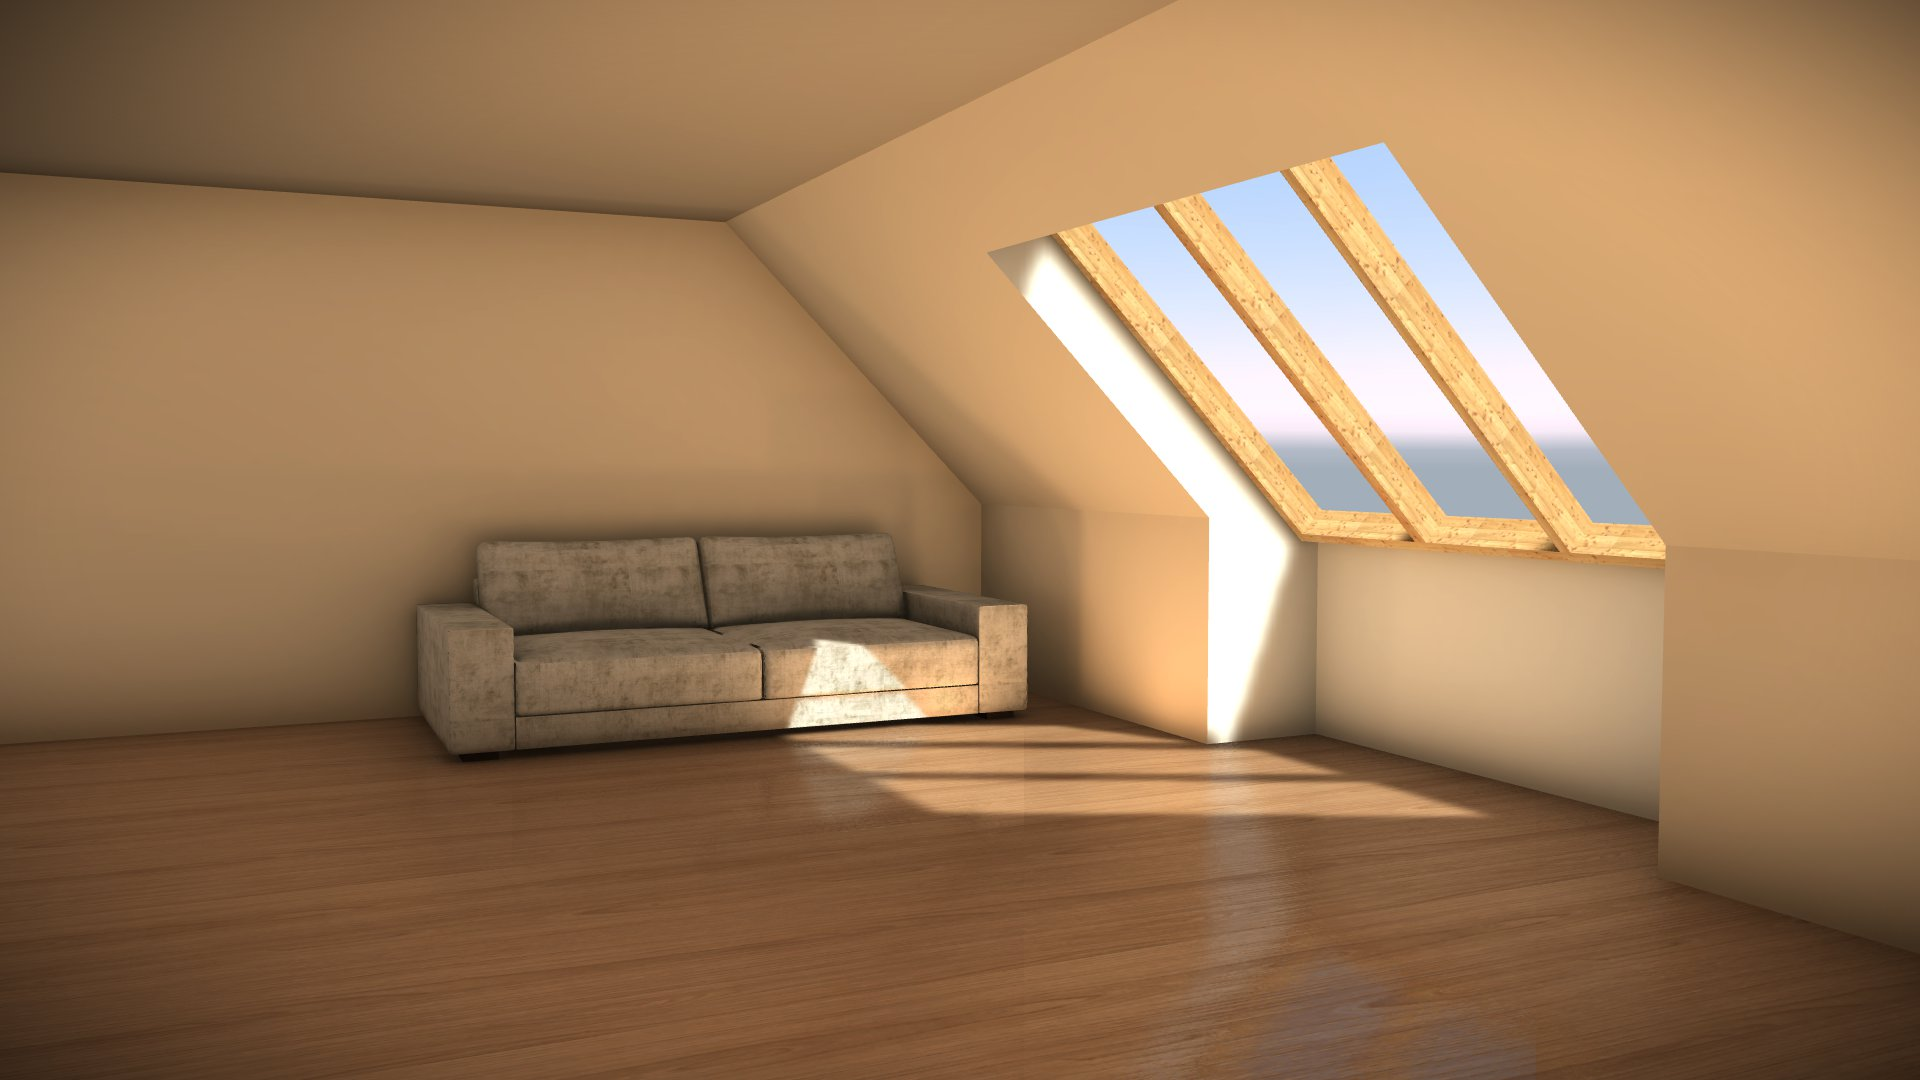 Using Bounced light to illuminate an attic room.